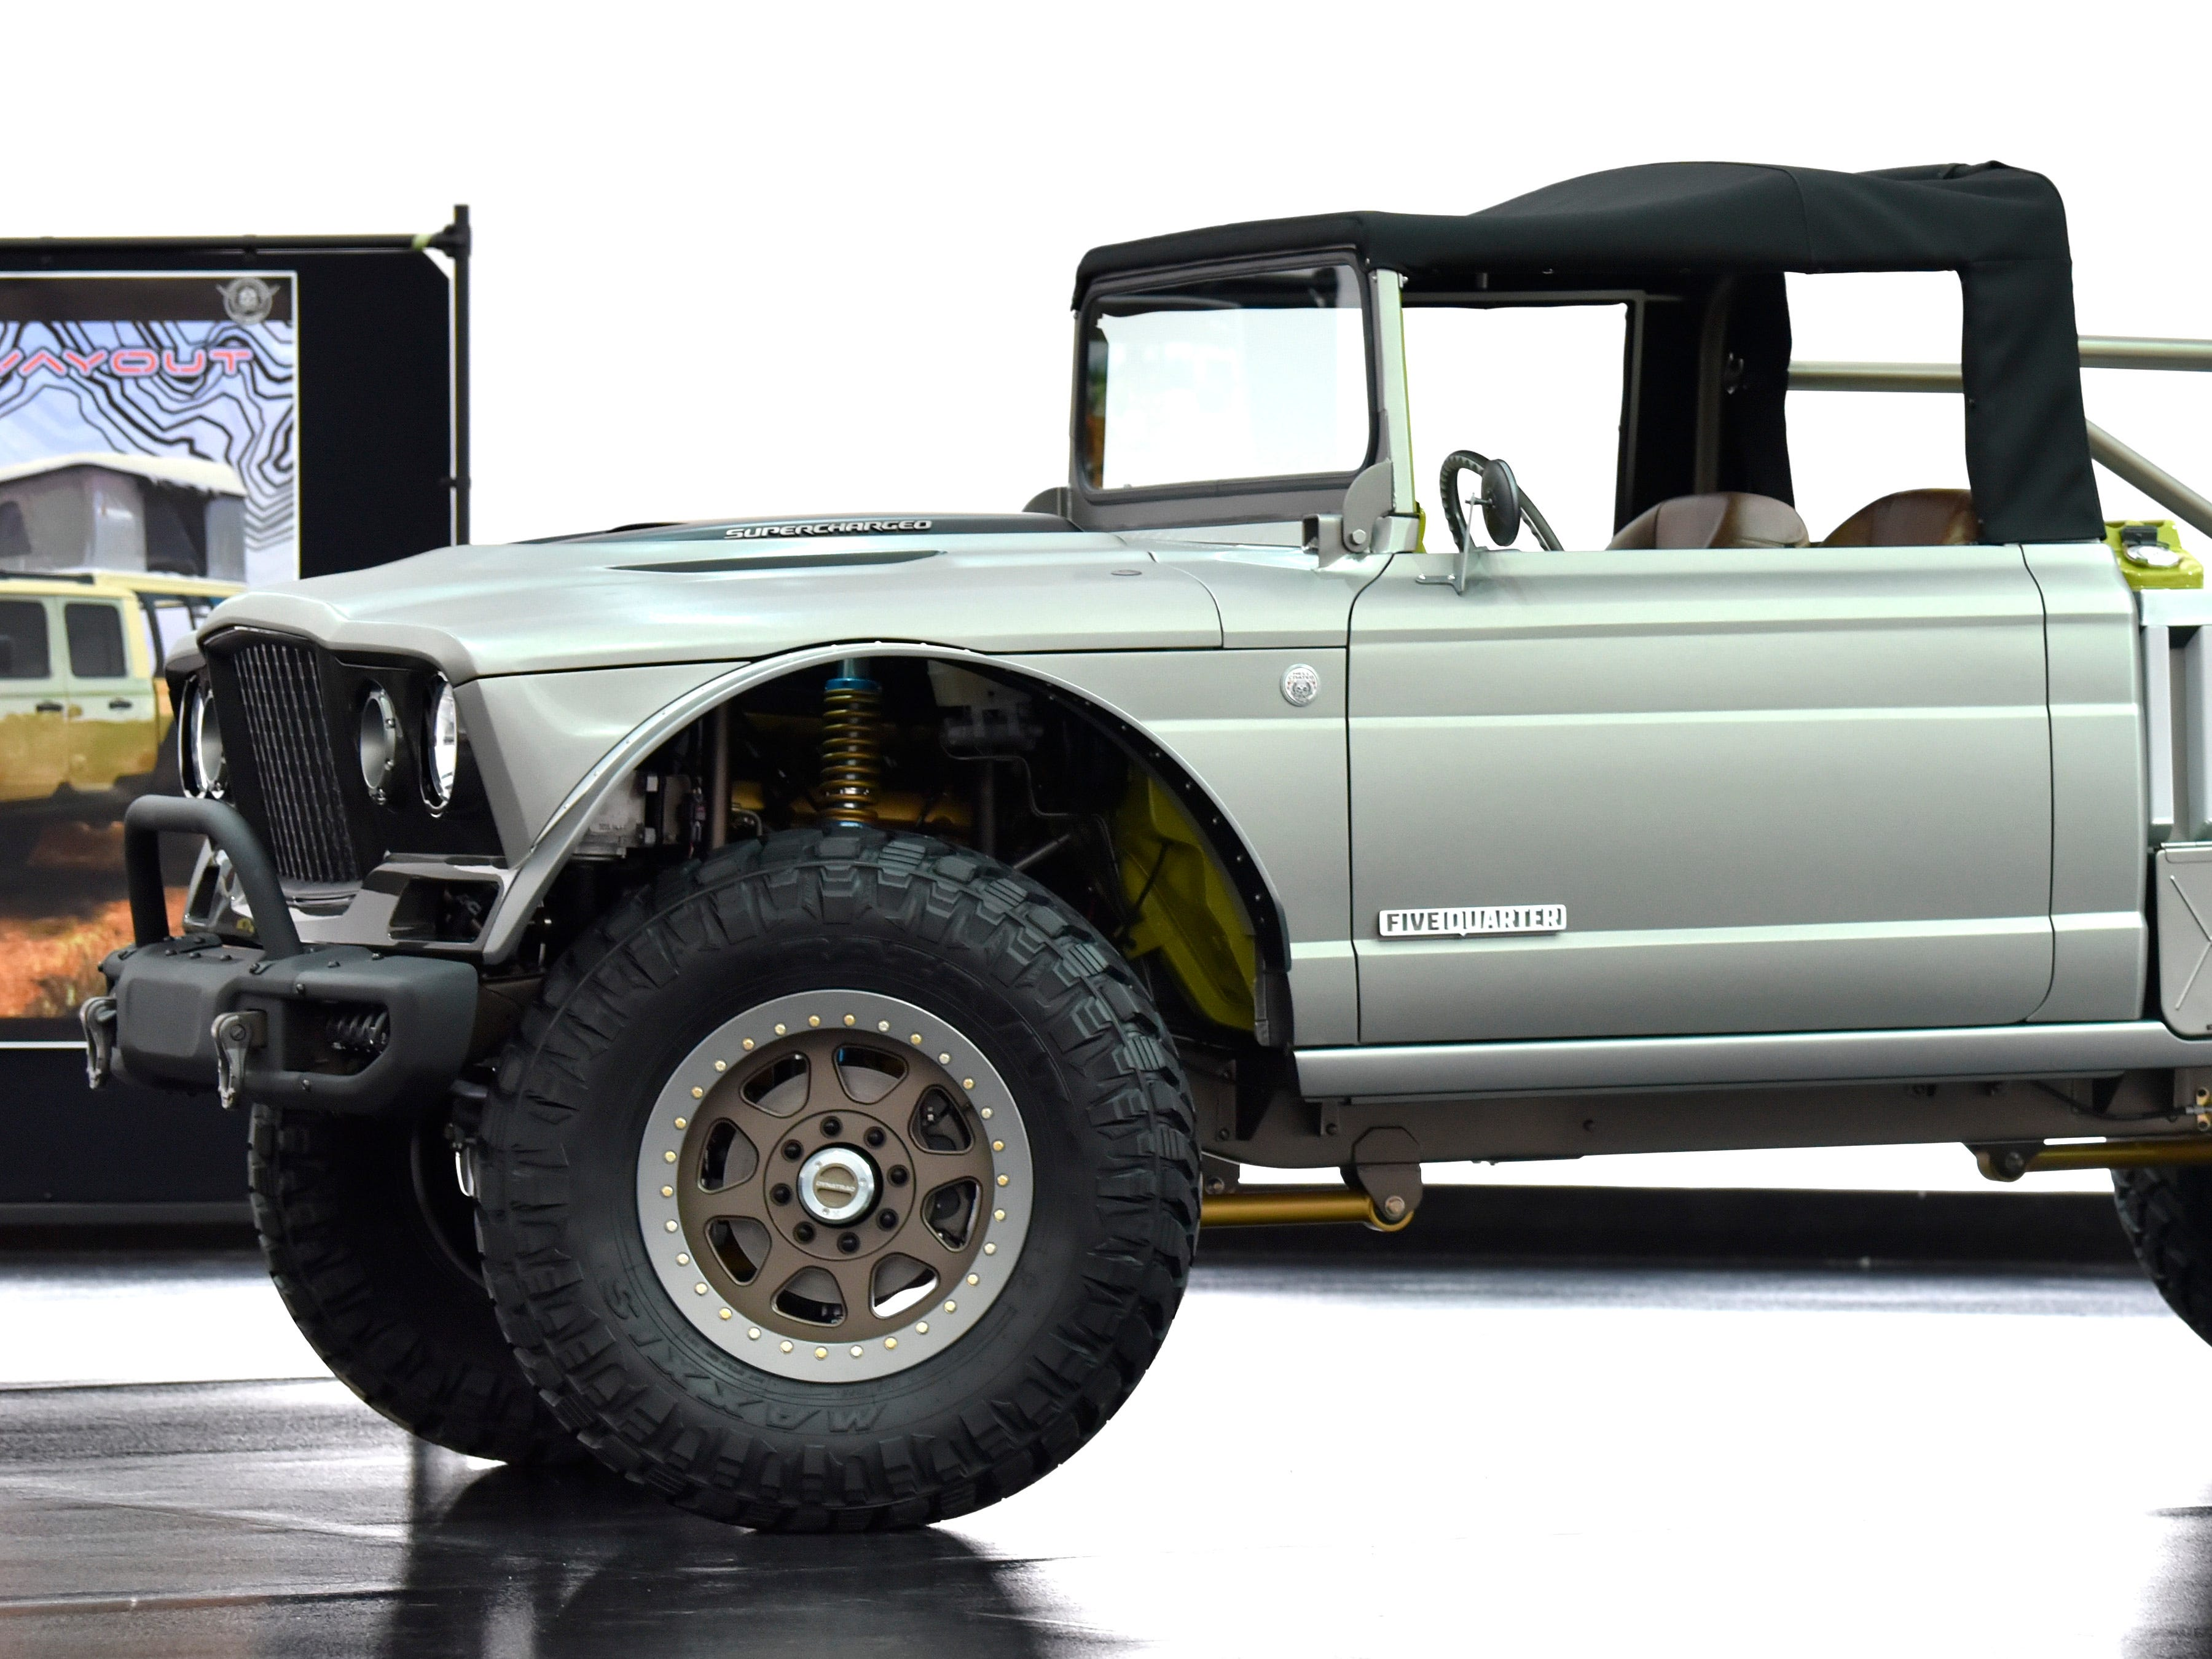 This is the Jeep M-715 Five-Quarter colored in Stainless Steel Wrap.